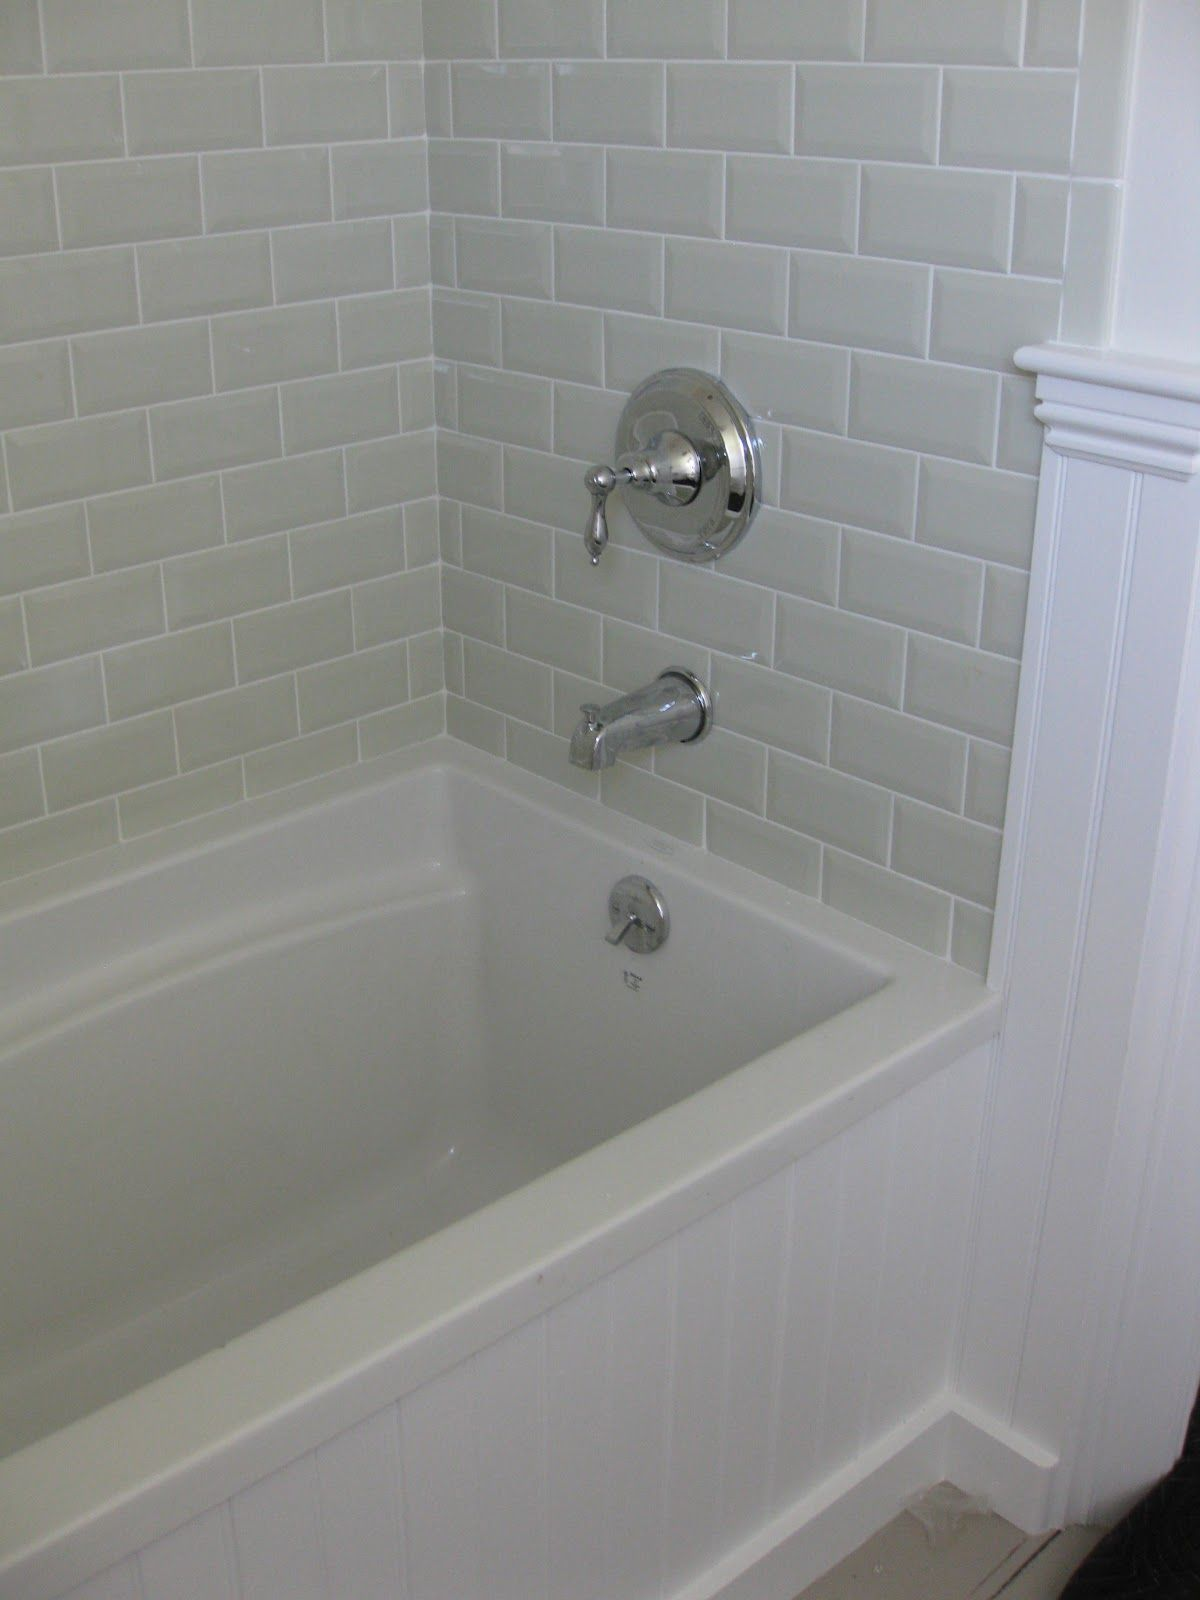 Beveled subway tile ensuite pinterest subway tiles for Subway tile designs